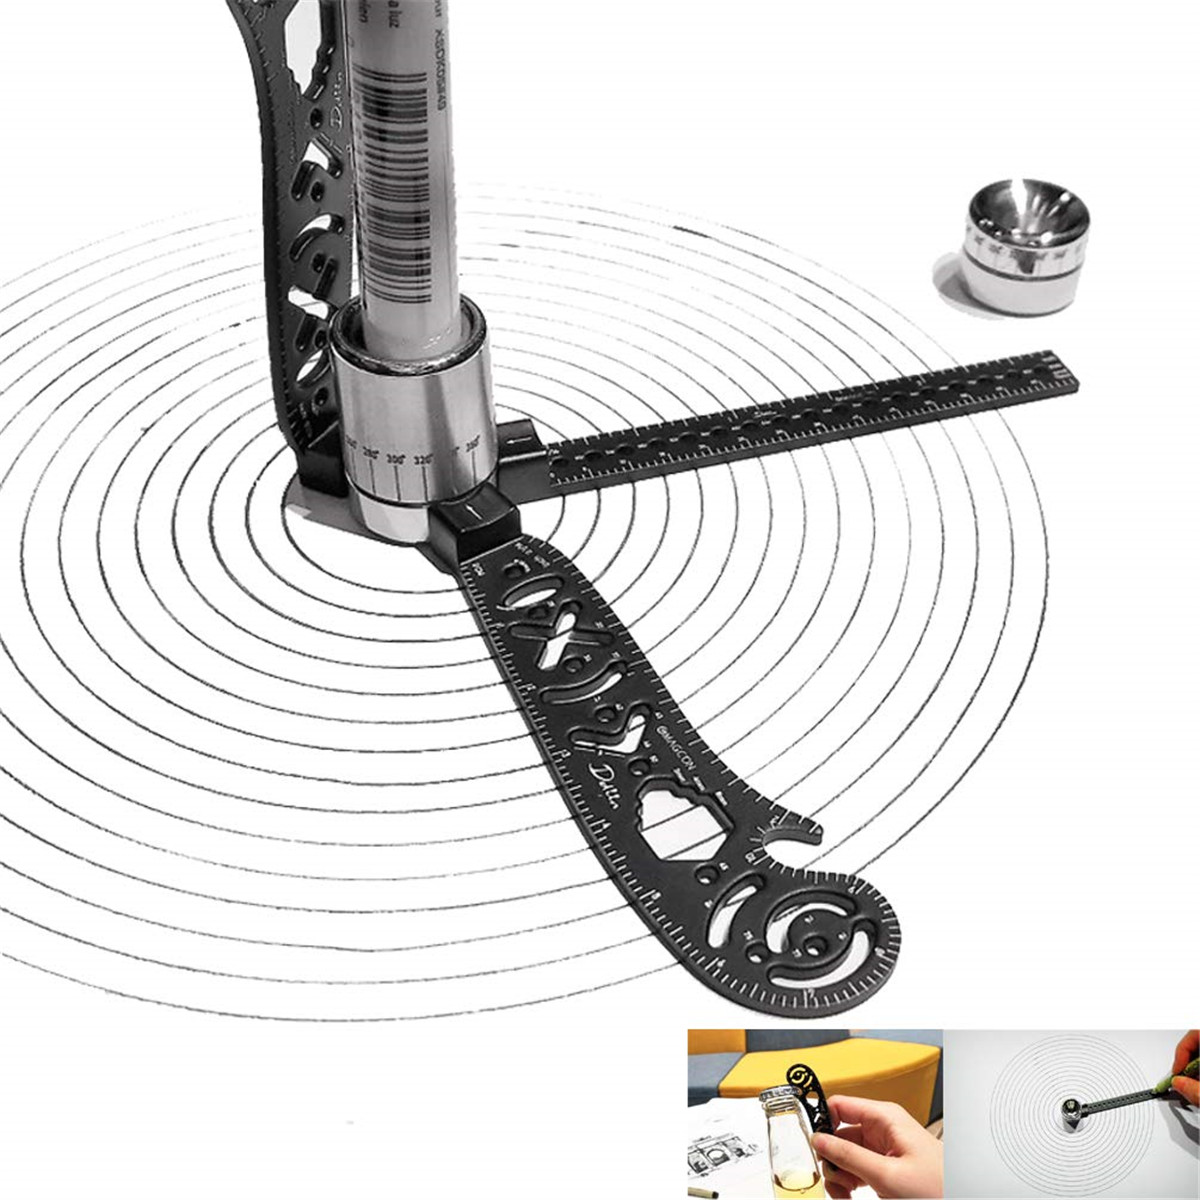 Drawl Tool Design Drawing Curved Metallic Multi-function Ruler Mini Protractor Combo-Circles Drawing Patterns For Office Artists